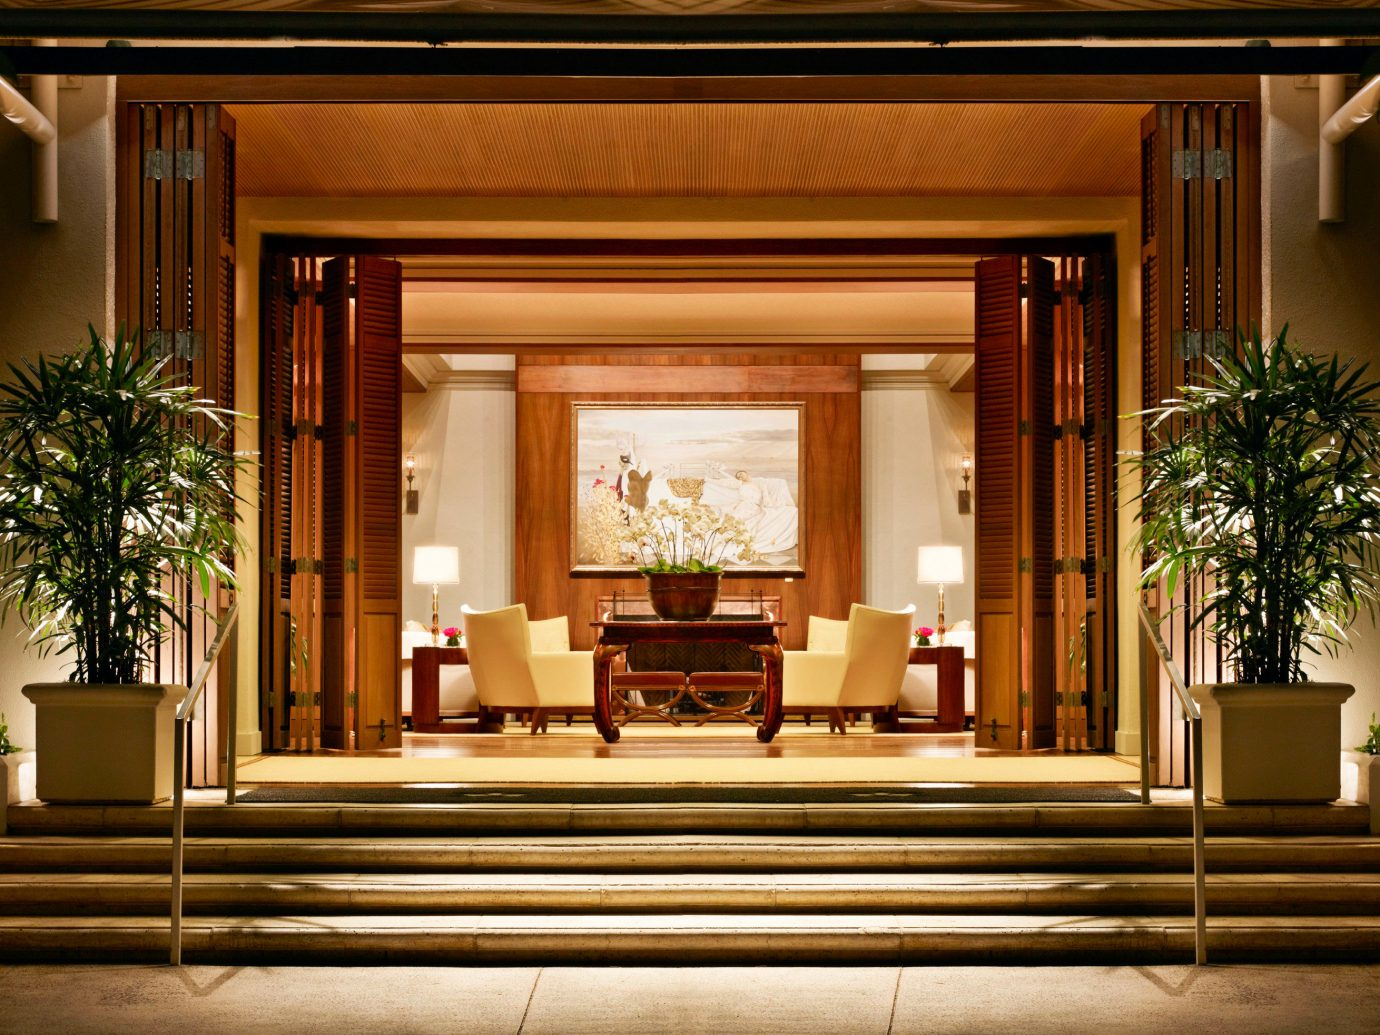 Boutique Hotels Design Hawaii Honolulu Hotels Lounge Luxury Resort indoor Lobby window home Architecture interior design estate lighting living room hall mansion furniture